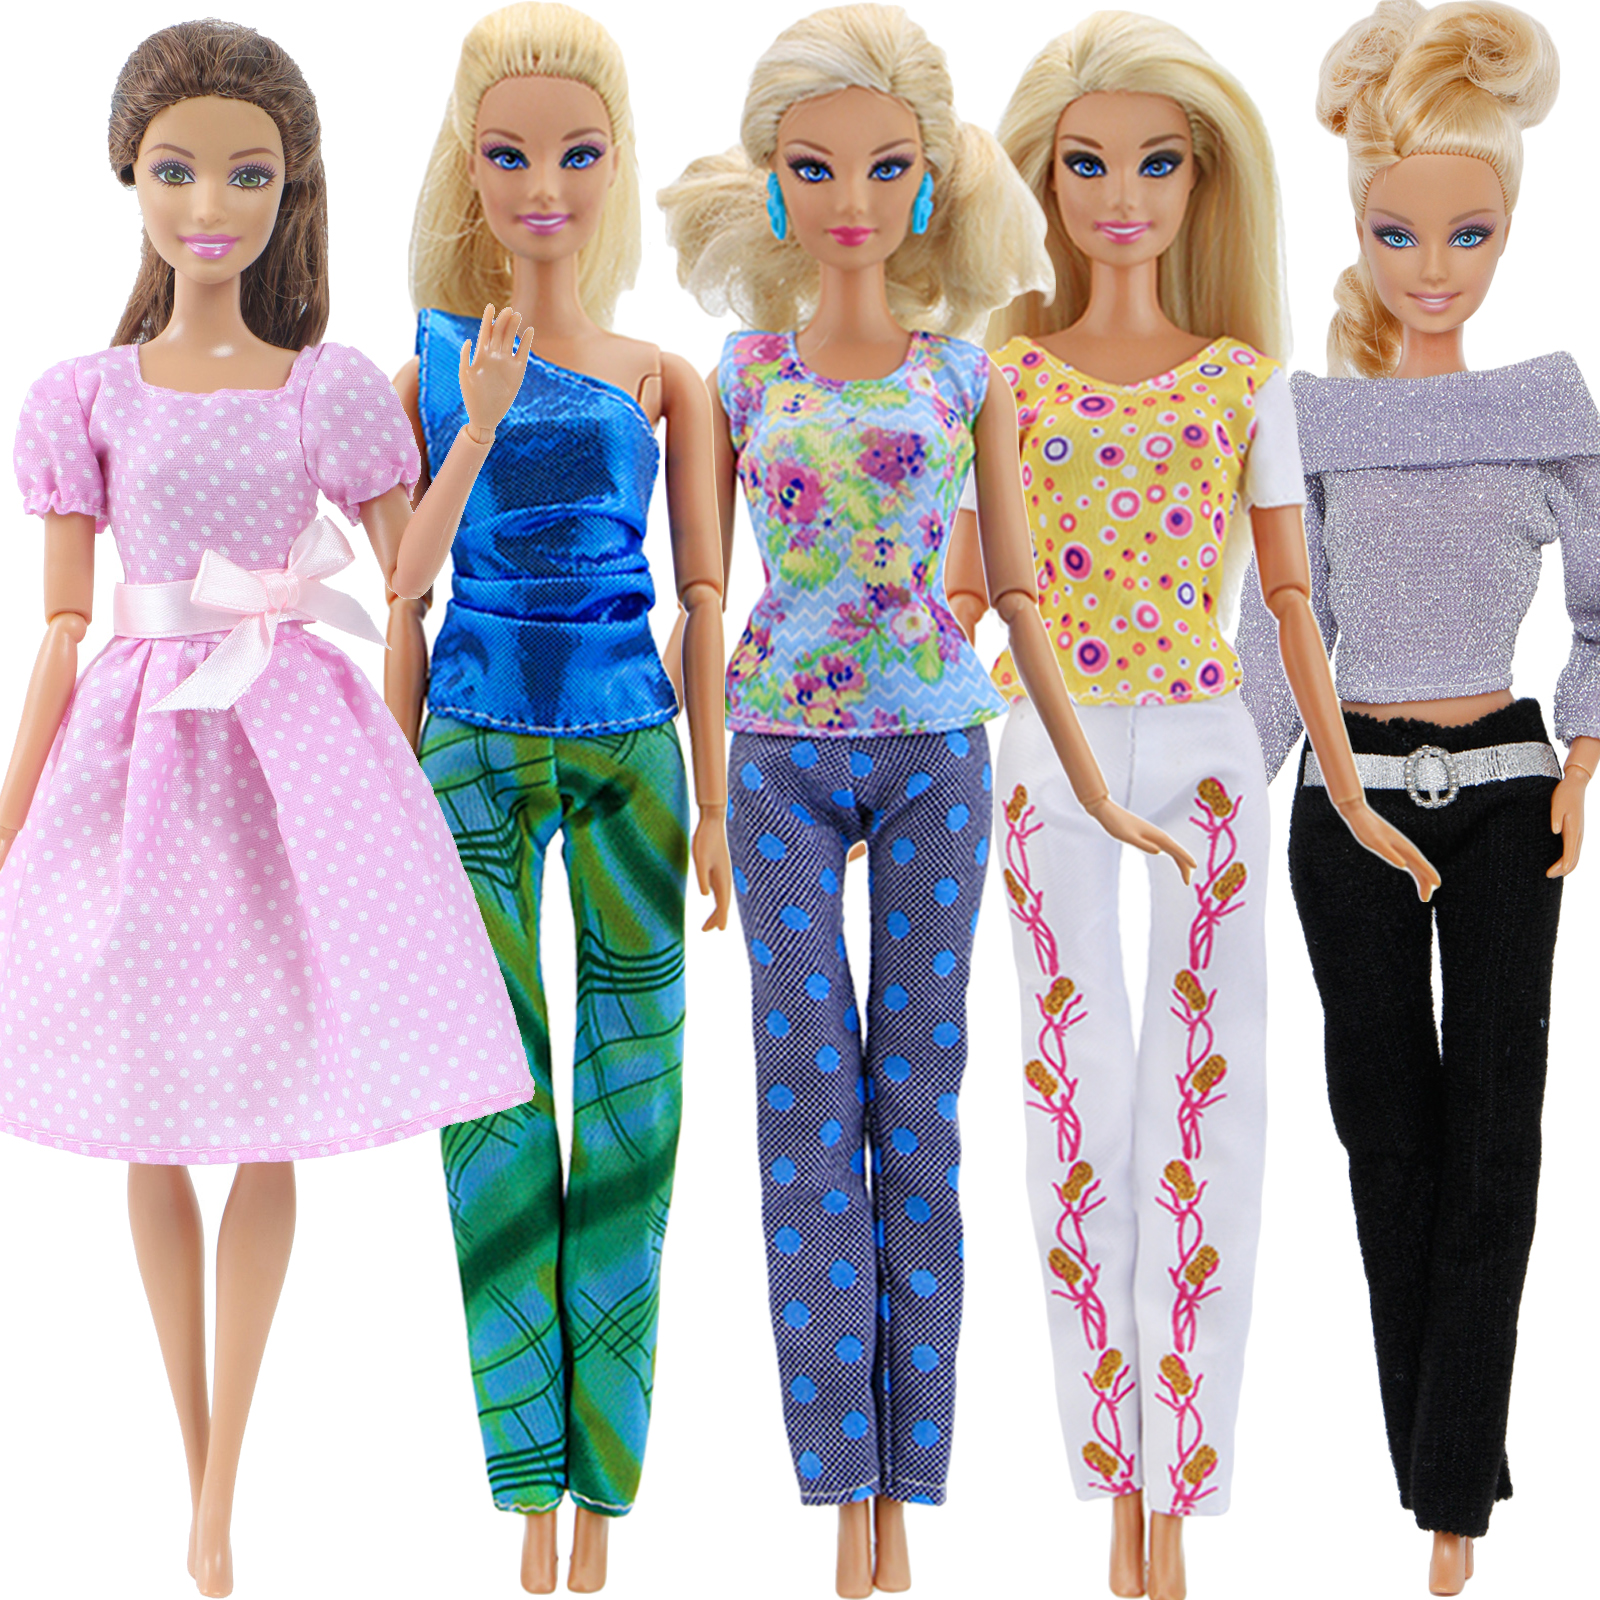 5x Daily Doll Clothes = 1 Cute Girl Dress + 4 Lady Outfits For Barbie Doll House Accessories Kid Toy Set Blouse Pants Trousers